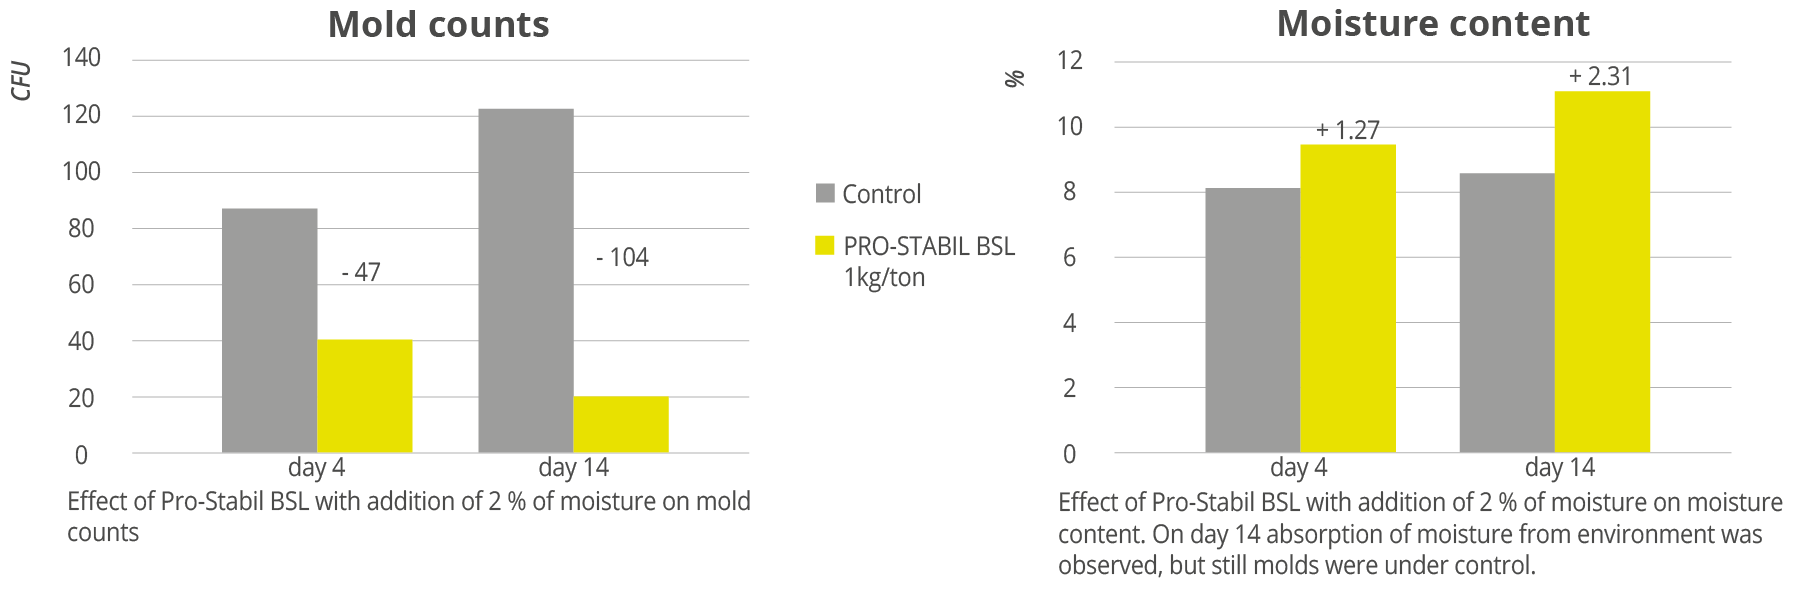 Figure 1: Effects of Pro-Stabil BSL with addition of 2 % moisture on feed quality indicators